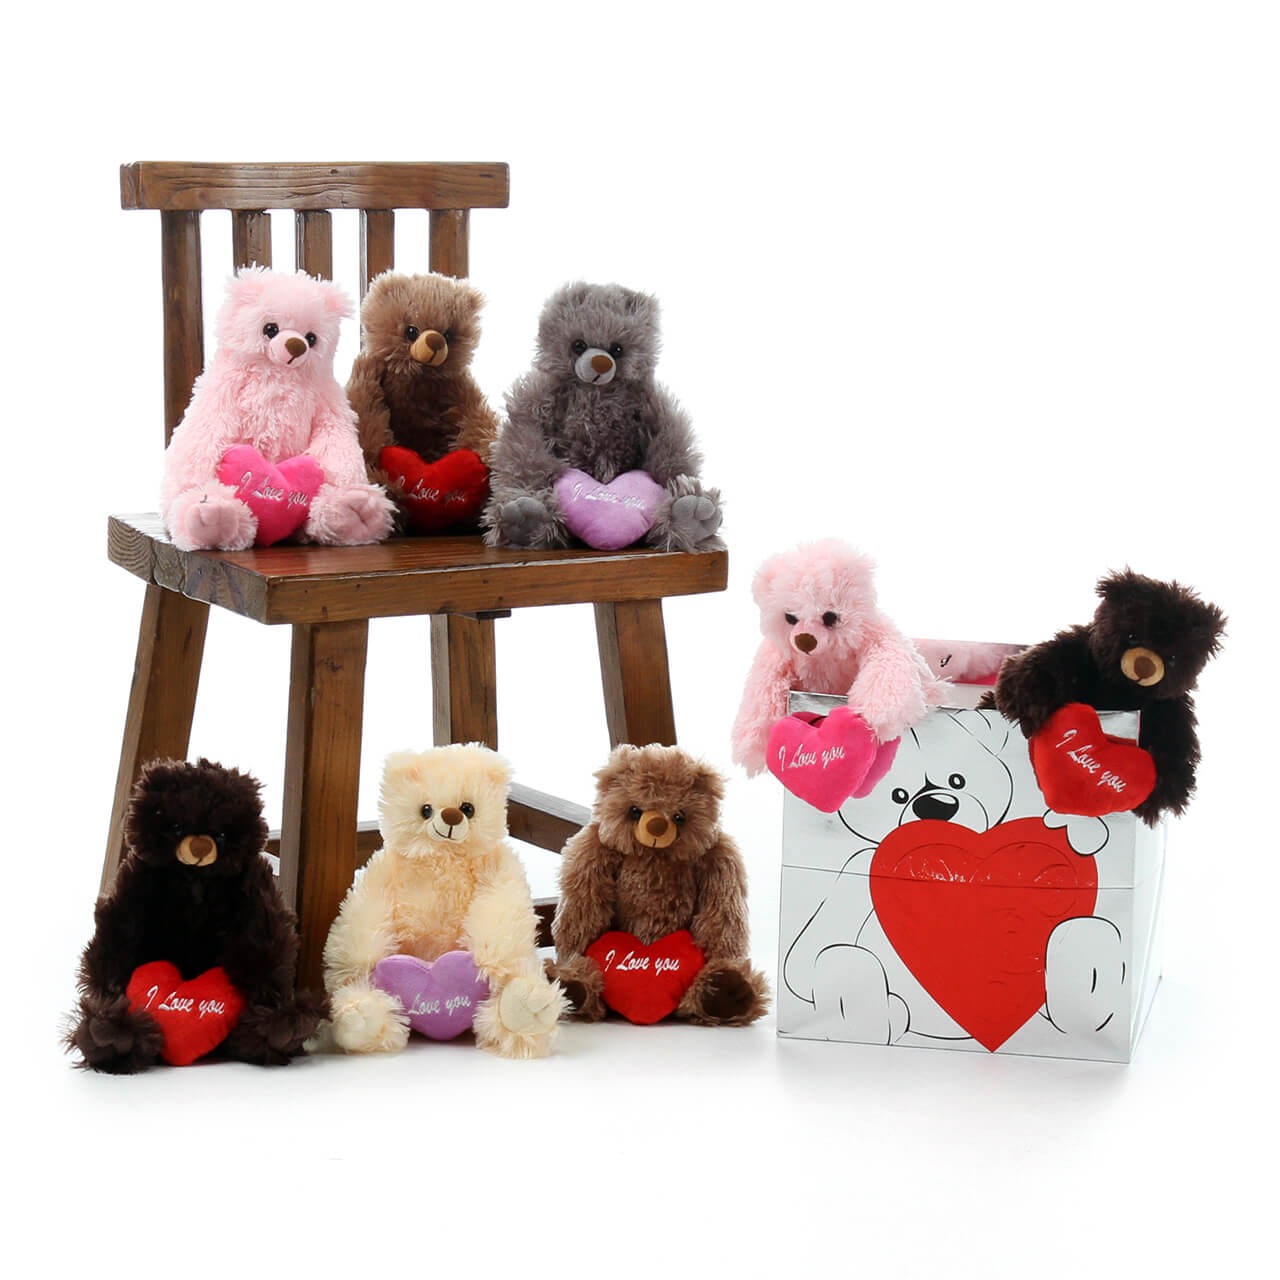 Adorable Package of  18 inch Teddy Bears